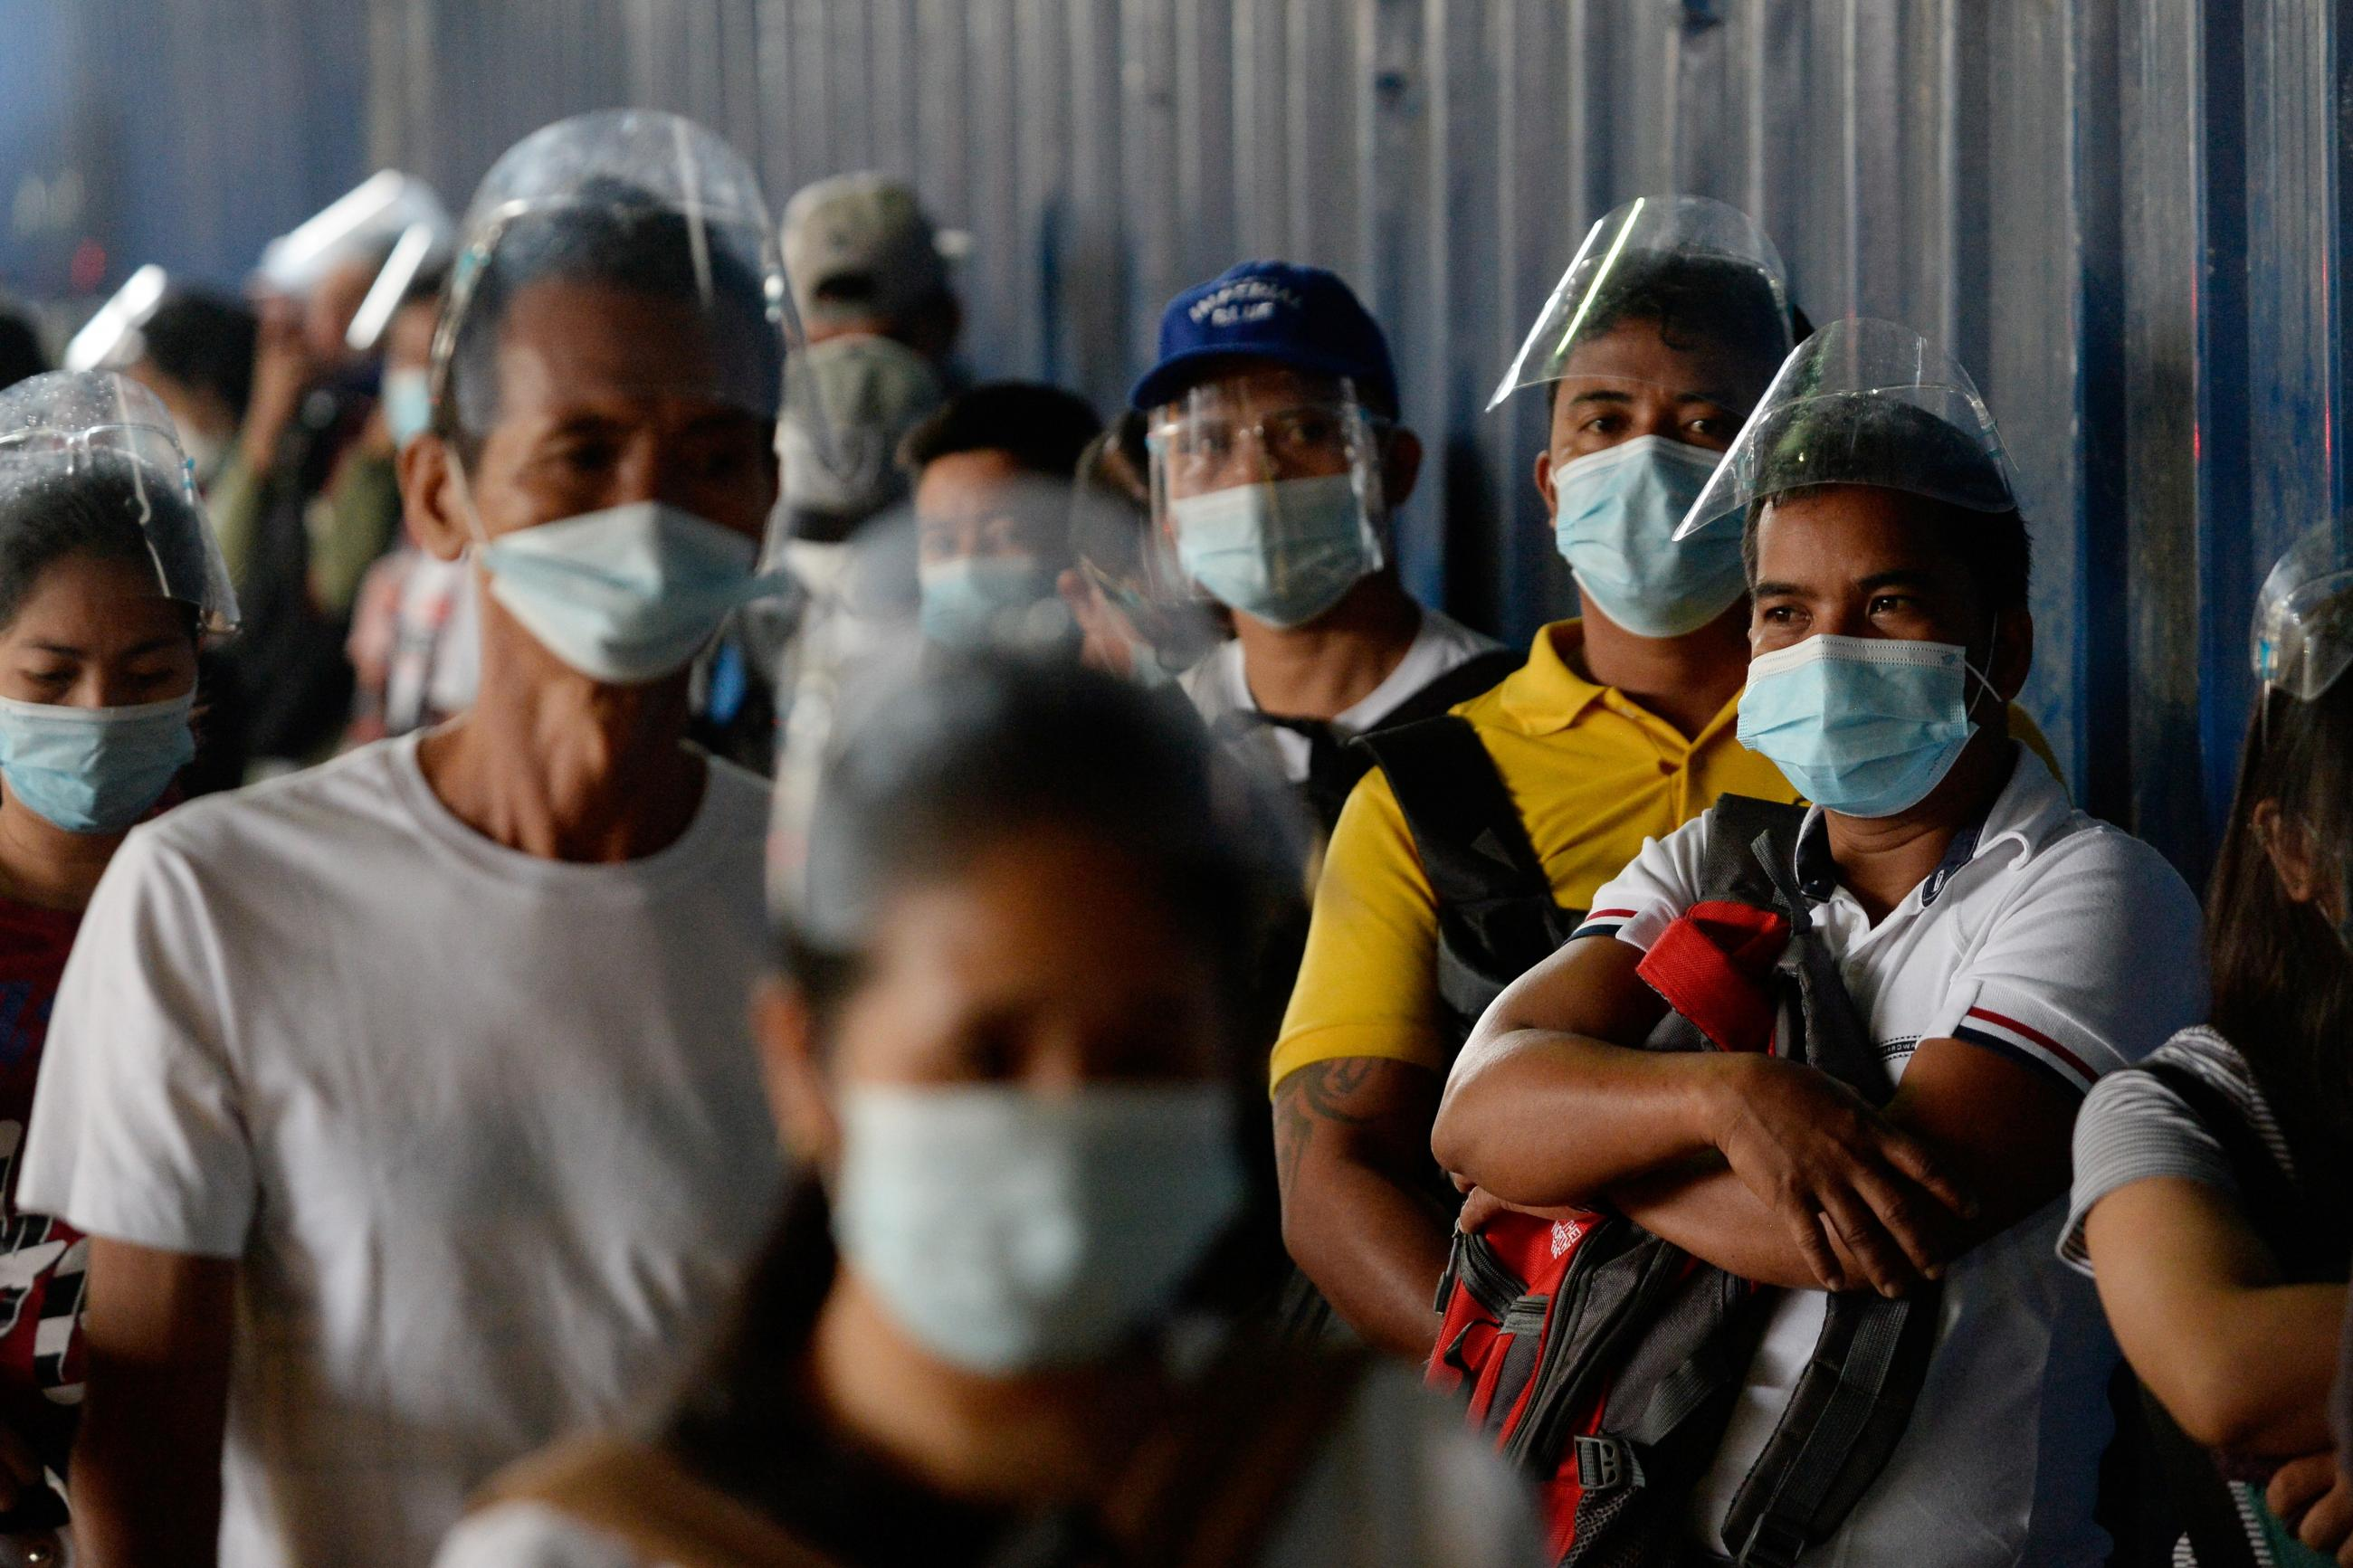 People wearing face masks as protection against the coronavirus disease (COVID-19) queue outside a government office, in Caloocan City, Metro Manila, Philippines, February 1, 2021.